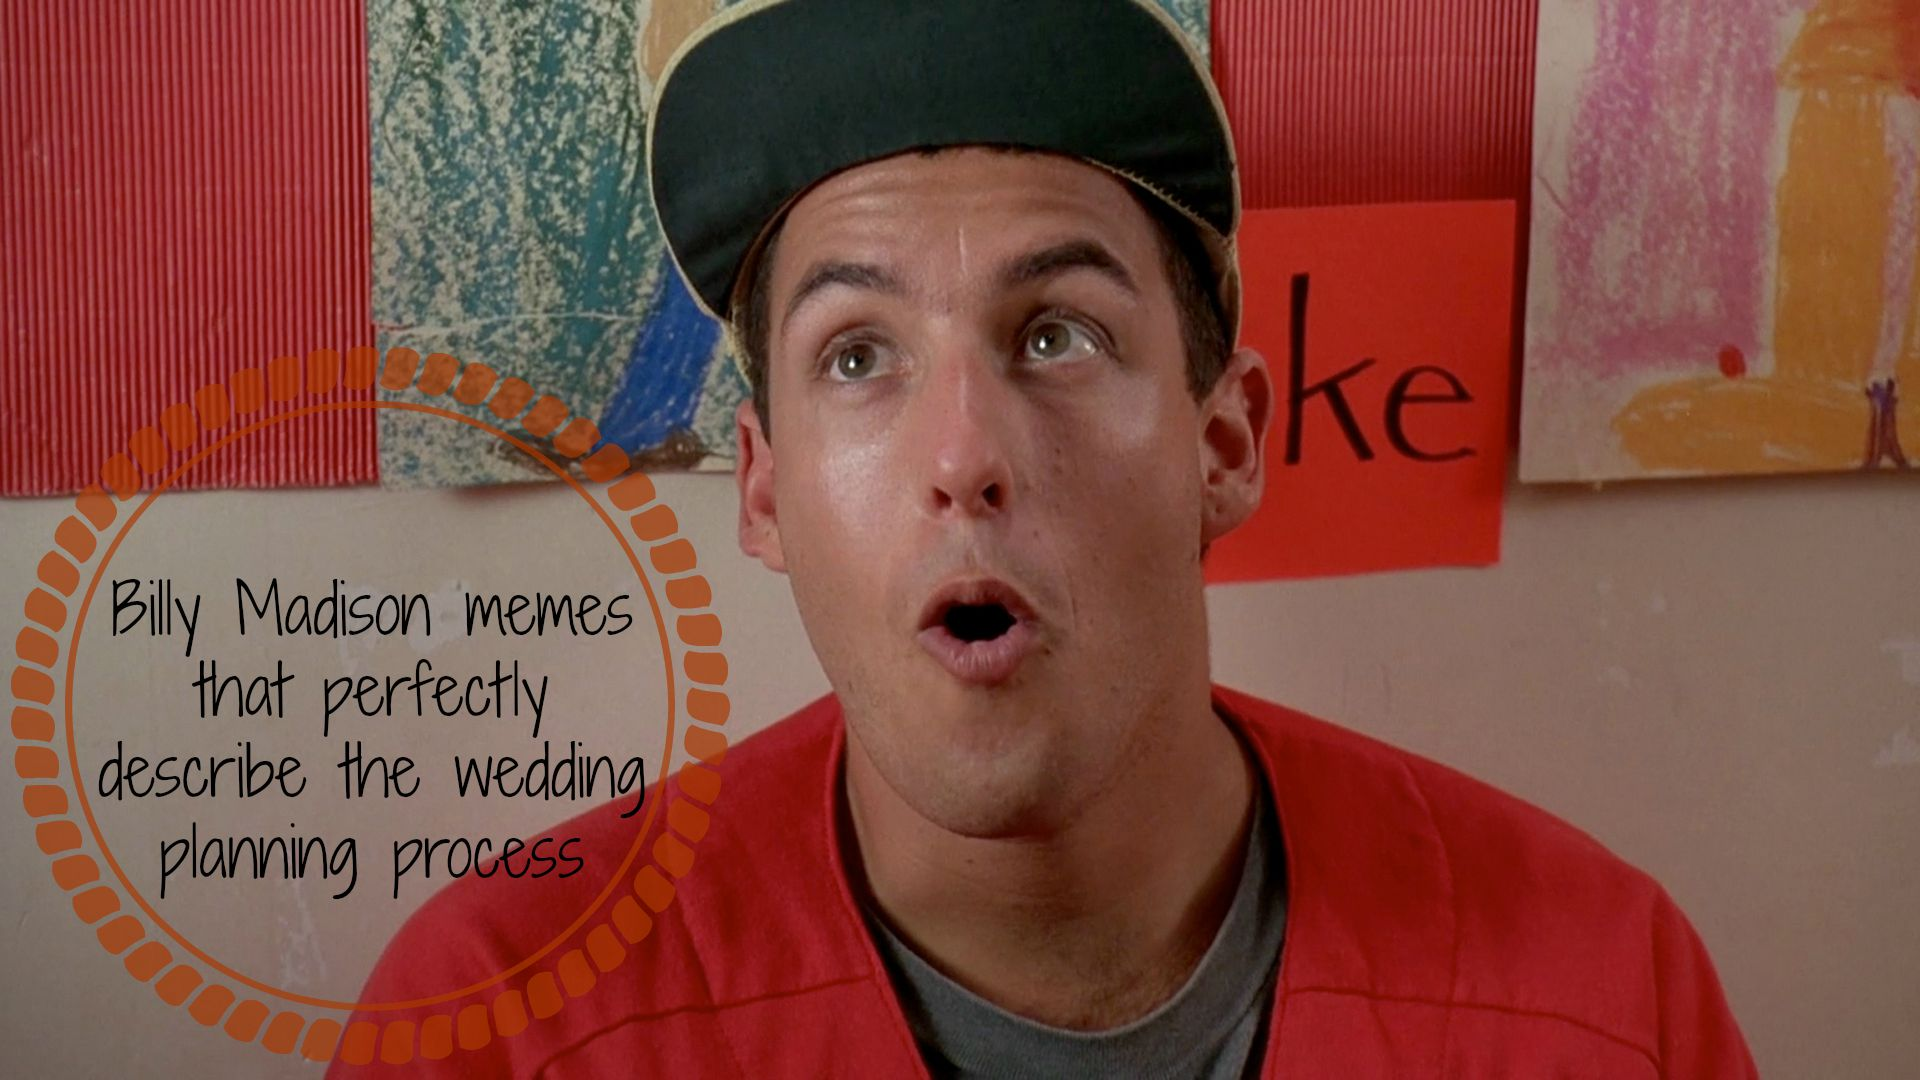 billy madison wedding memes